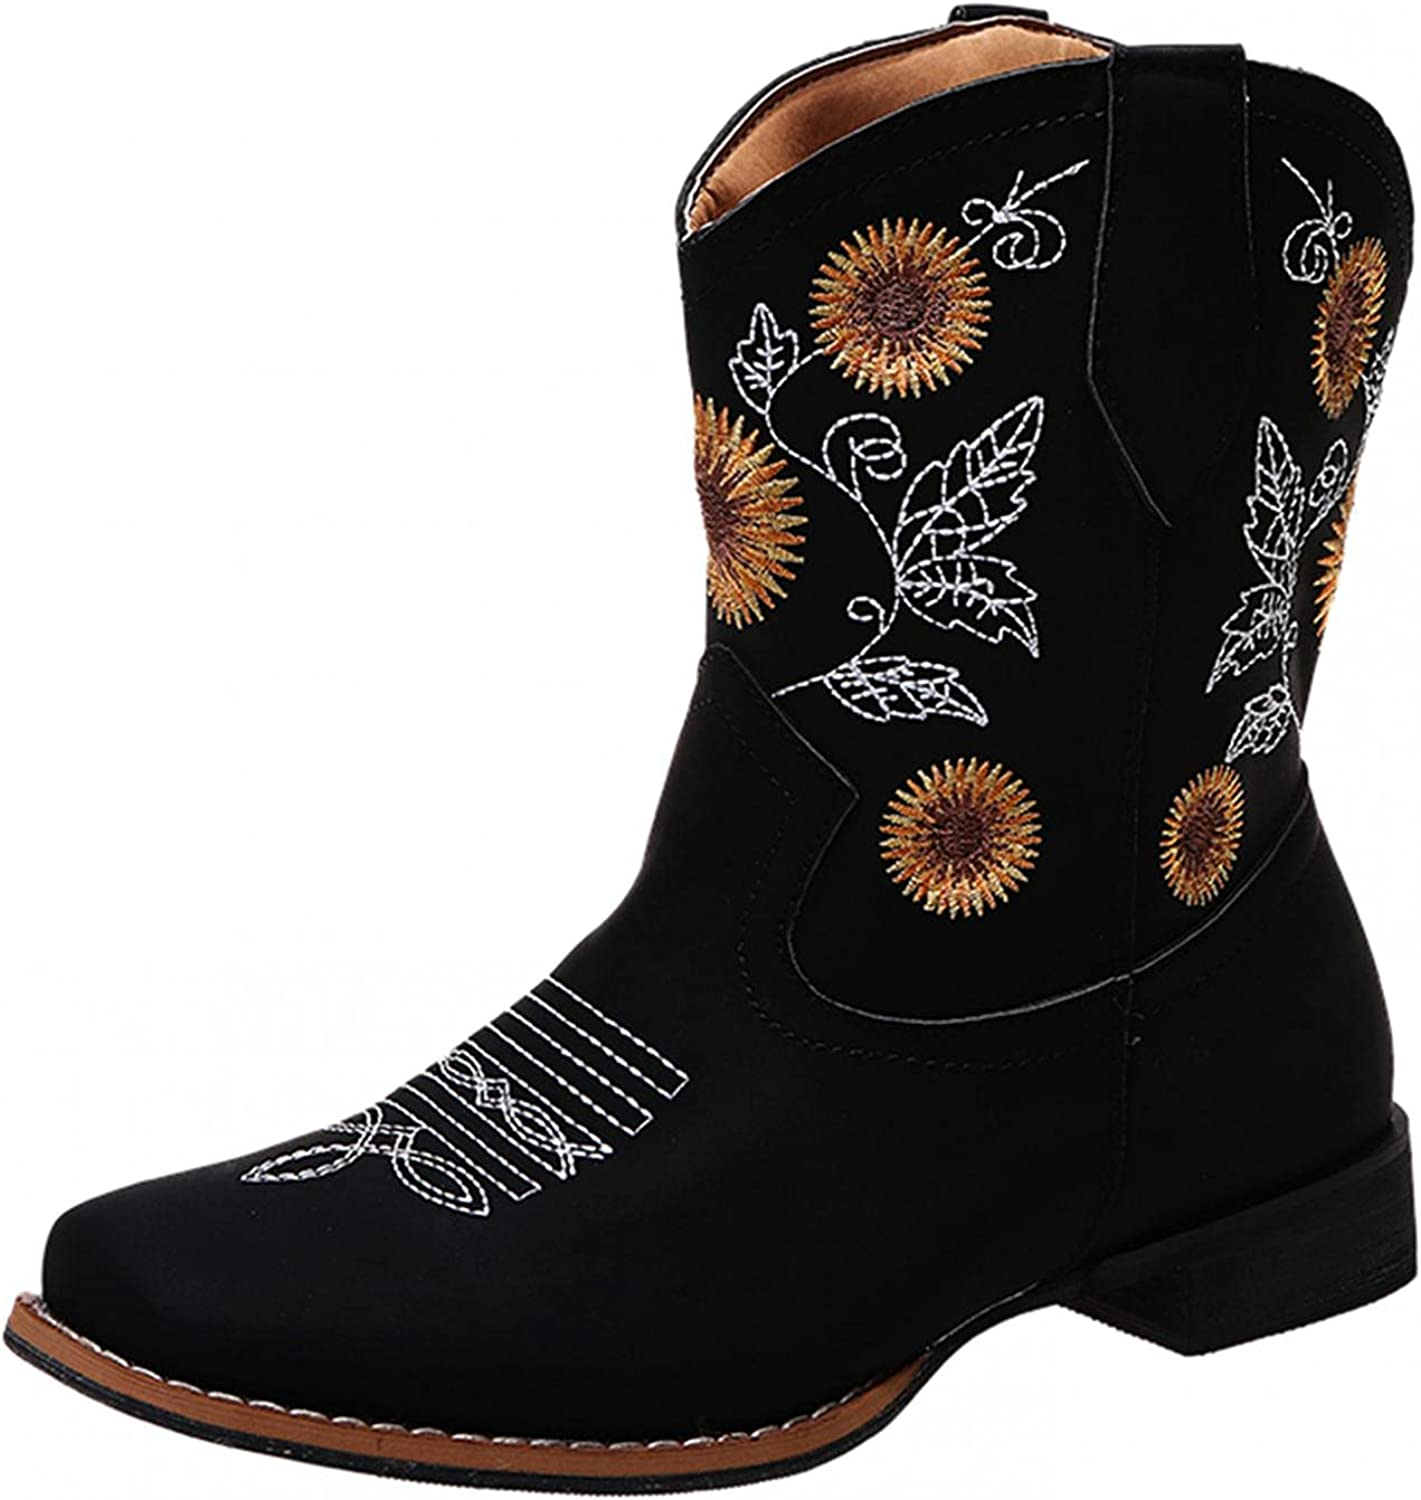 AODONG Ankle Booties for Women Sunflowers Embroidery Cowboy Boots Mid Calf Chunky Heel Retro Low Heel Pull On Boots